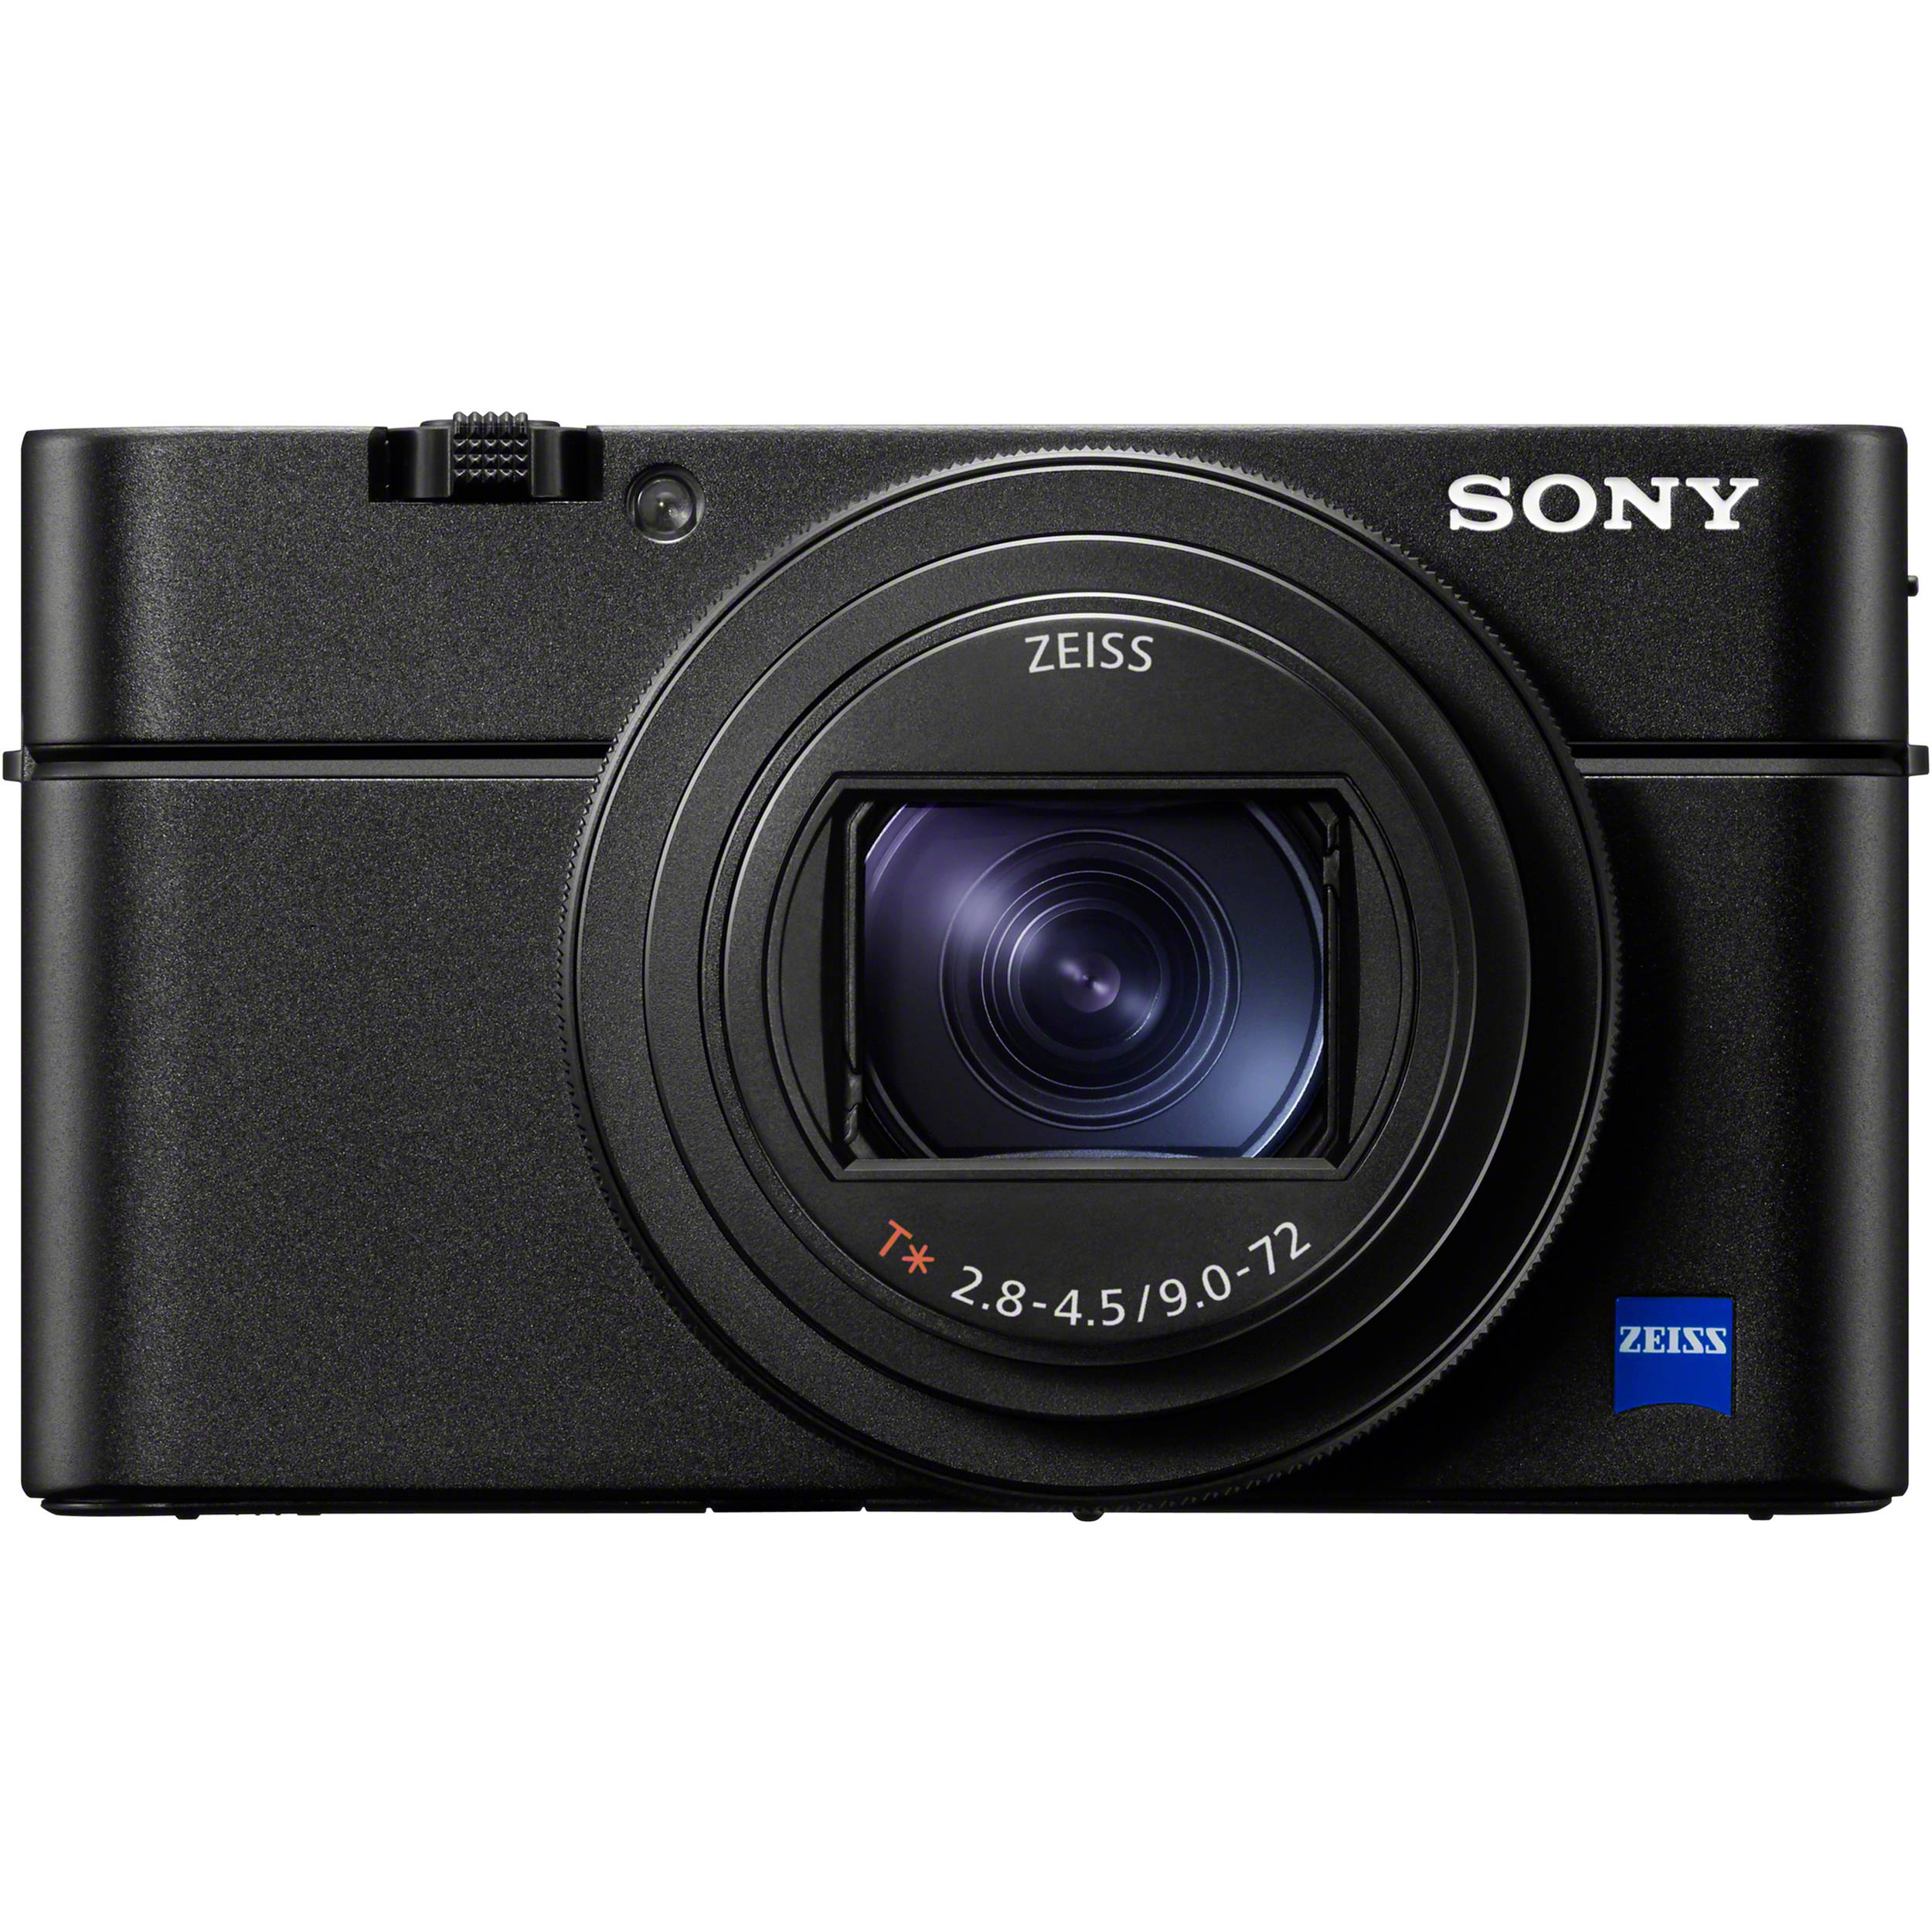 Case for Sony Cyber Shot Point and Shoot Digital Camera with Screen Protector